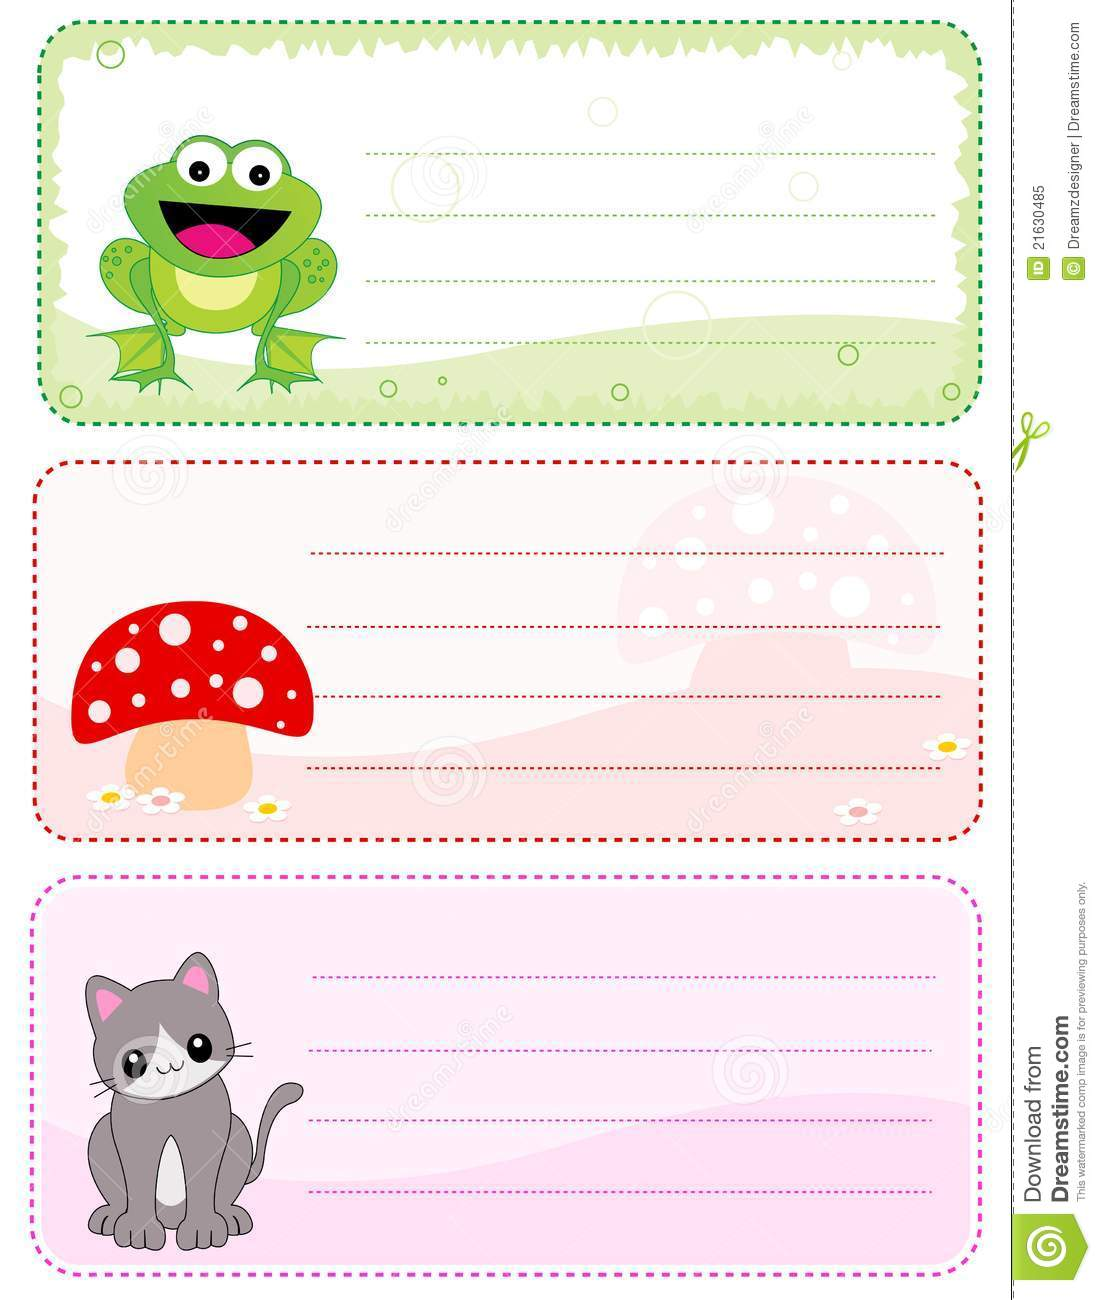 kids name cards / stickers with empty space to add details like name ...